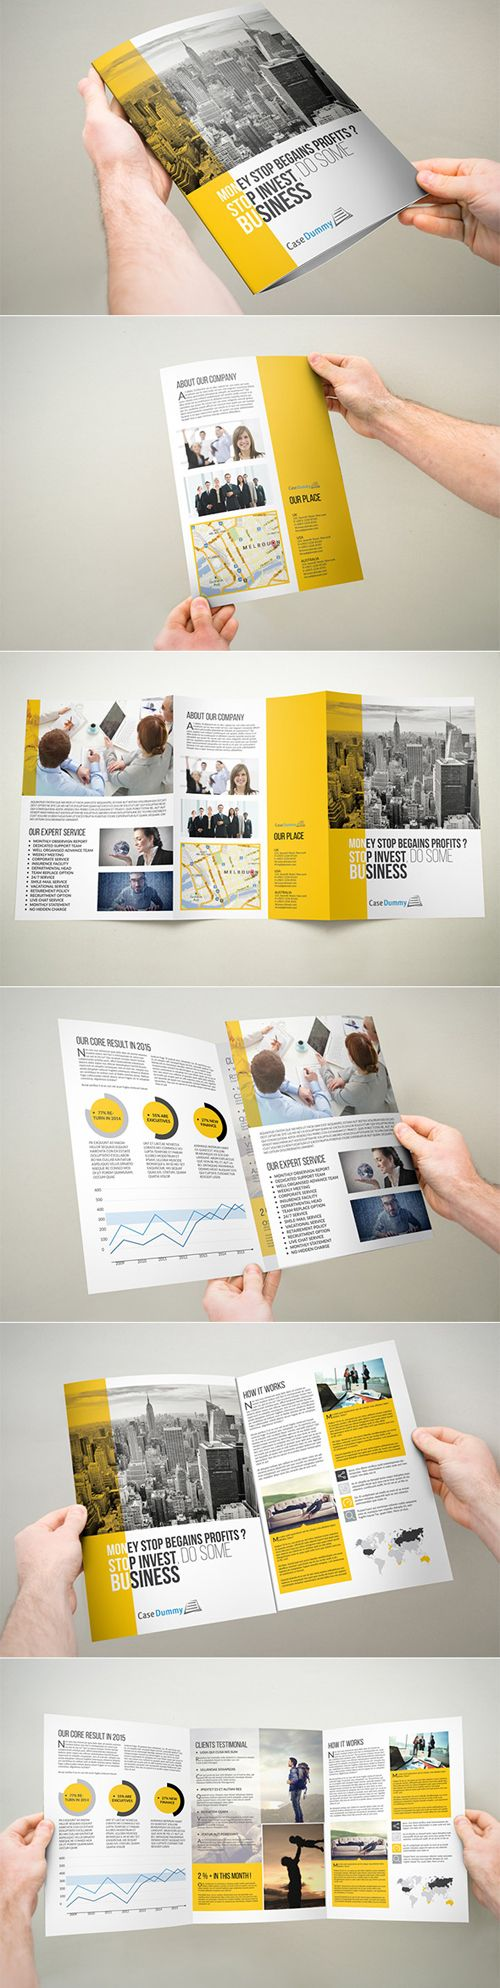 A TriFold Brochure Corporate Design  Brochure Design